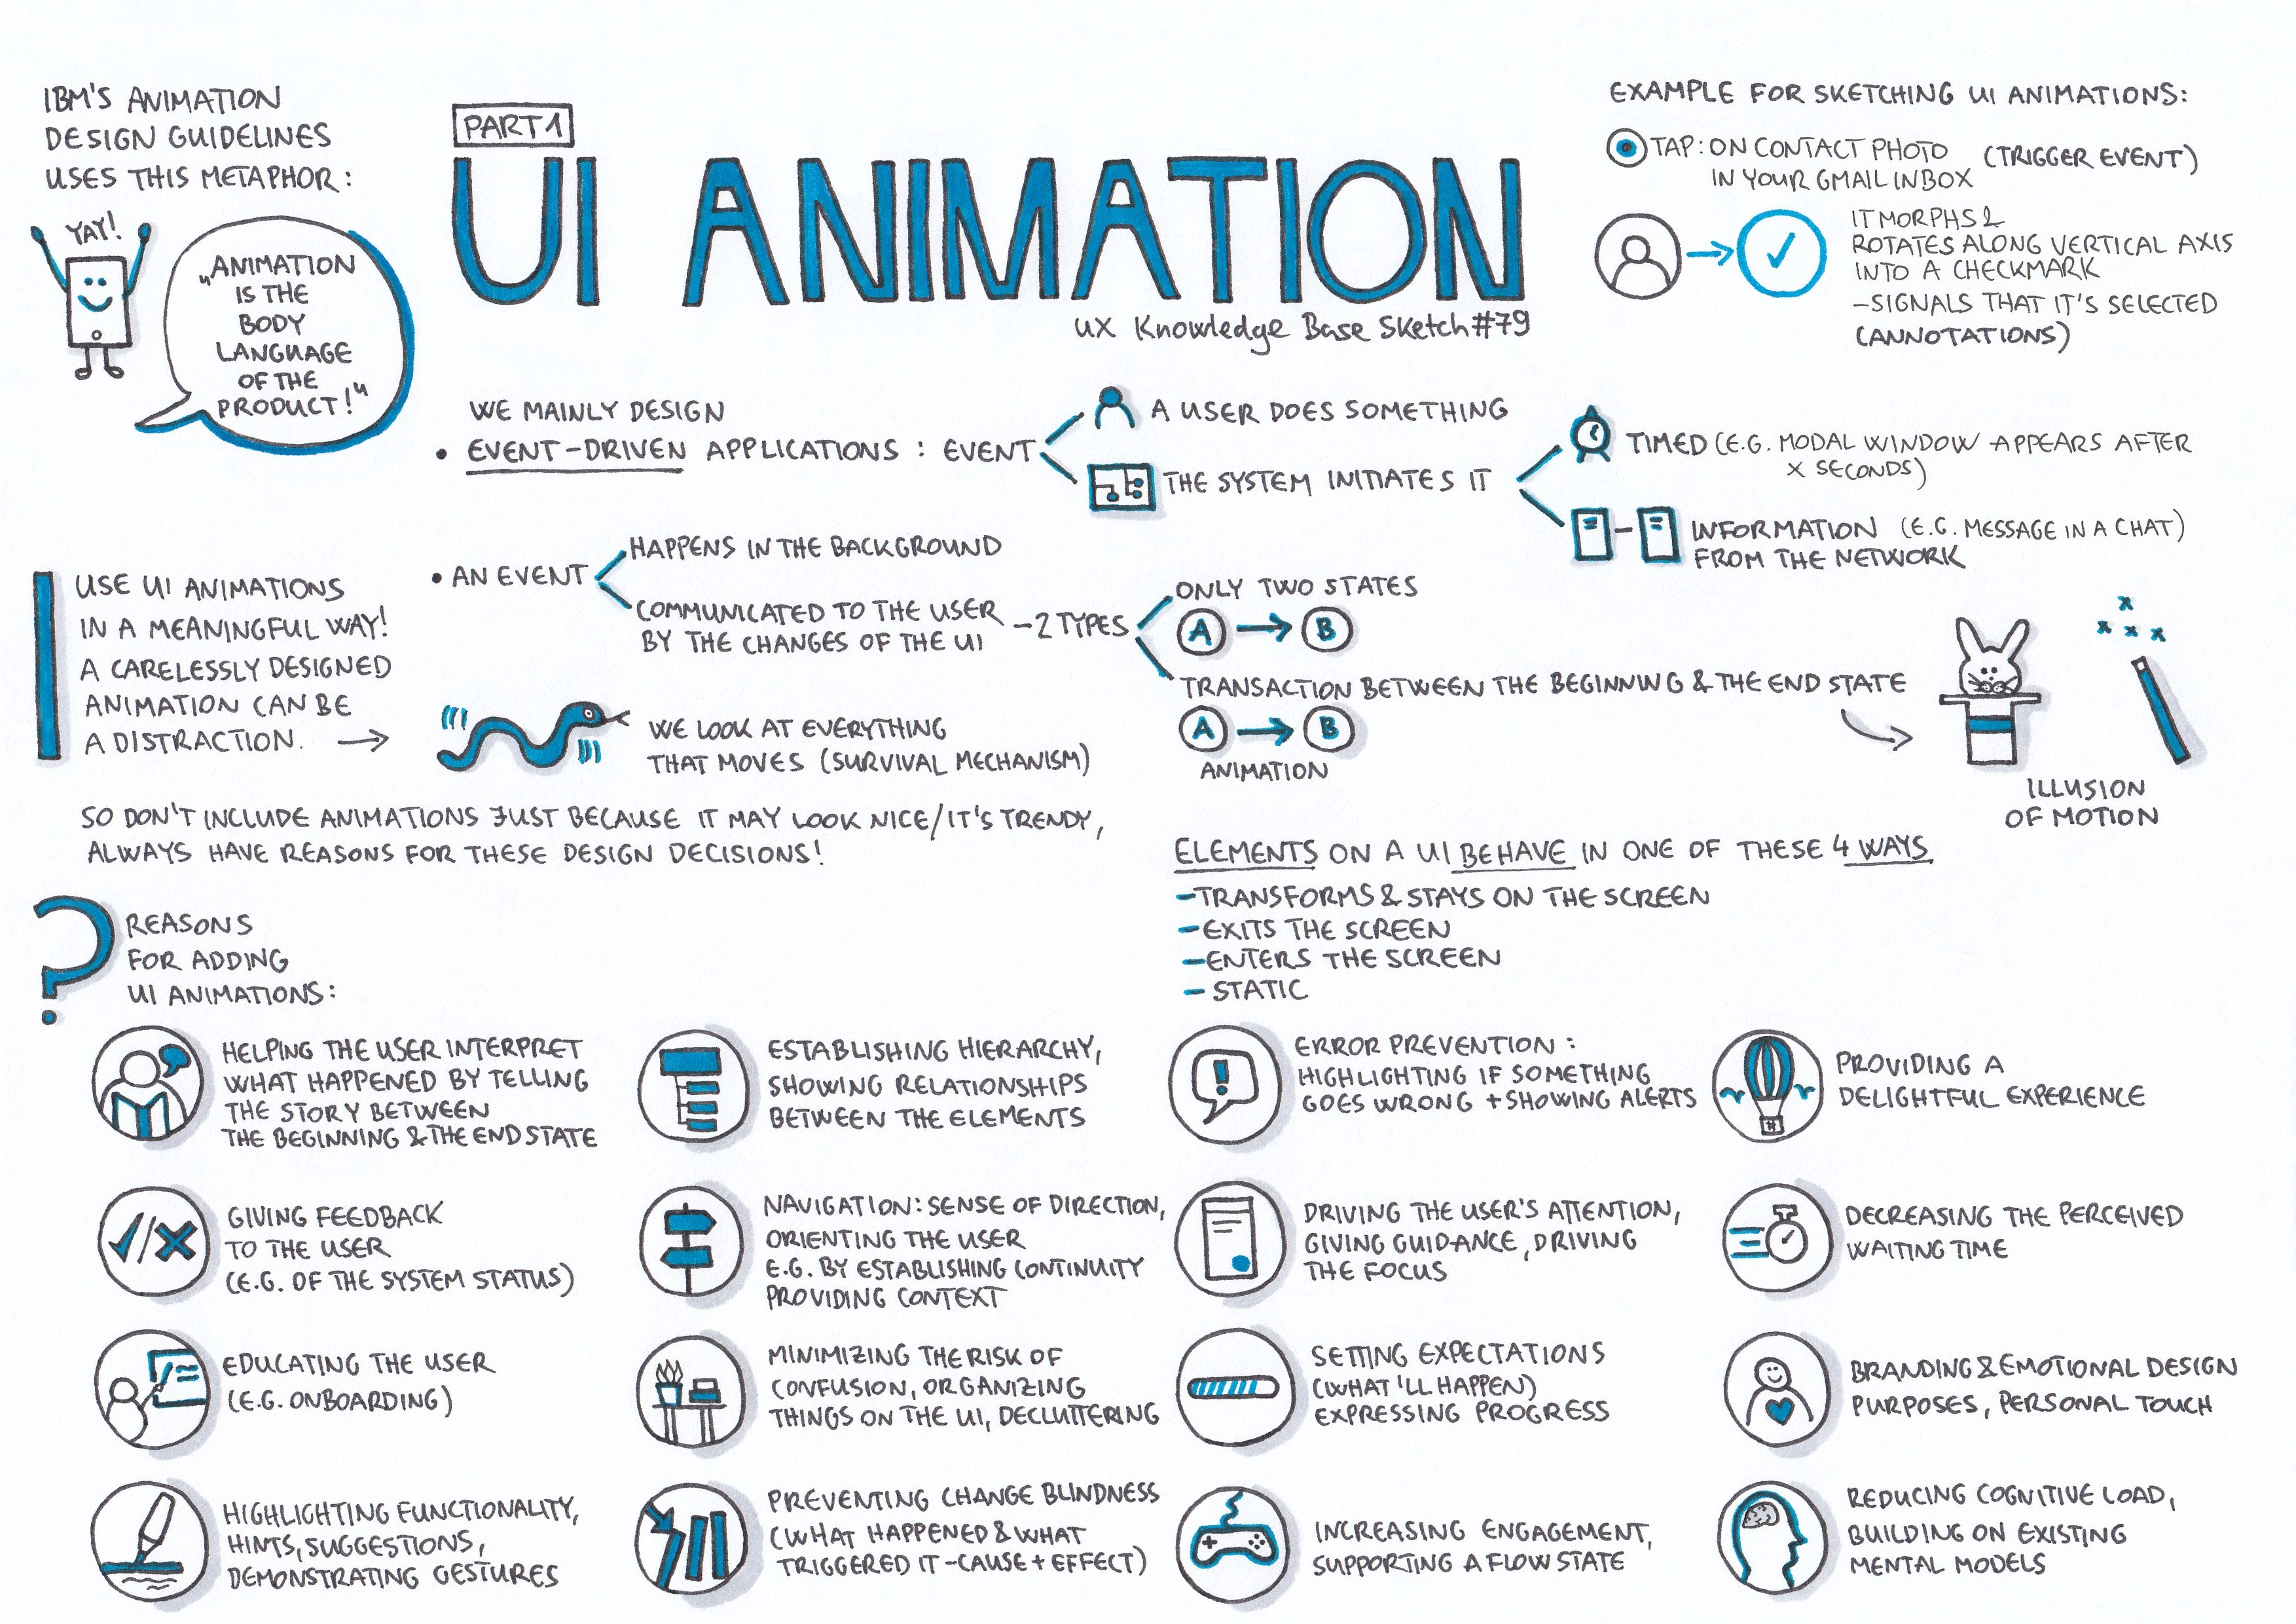 Ui Animation Part 1 Ux Knowledge Base Sketch 79 By Krisztina Szerovay Ux Knowledge Base Sketch